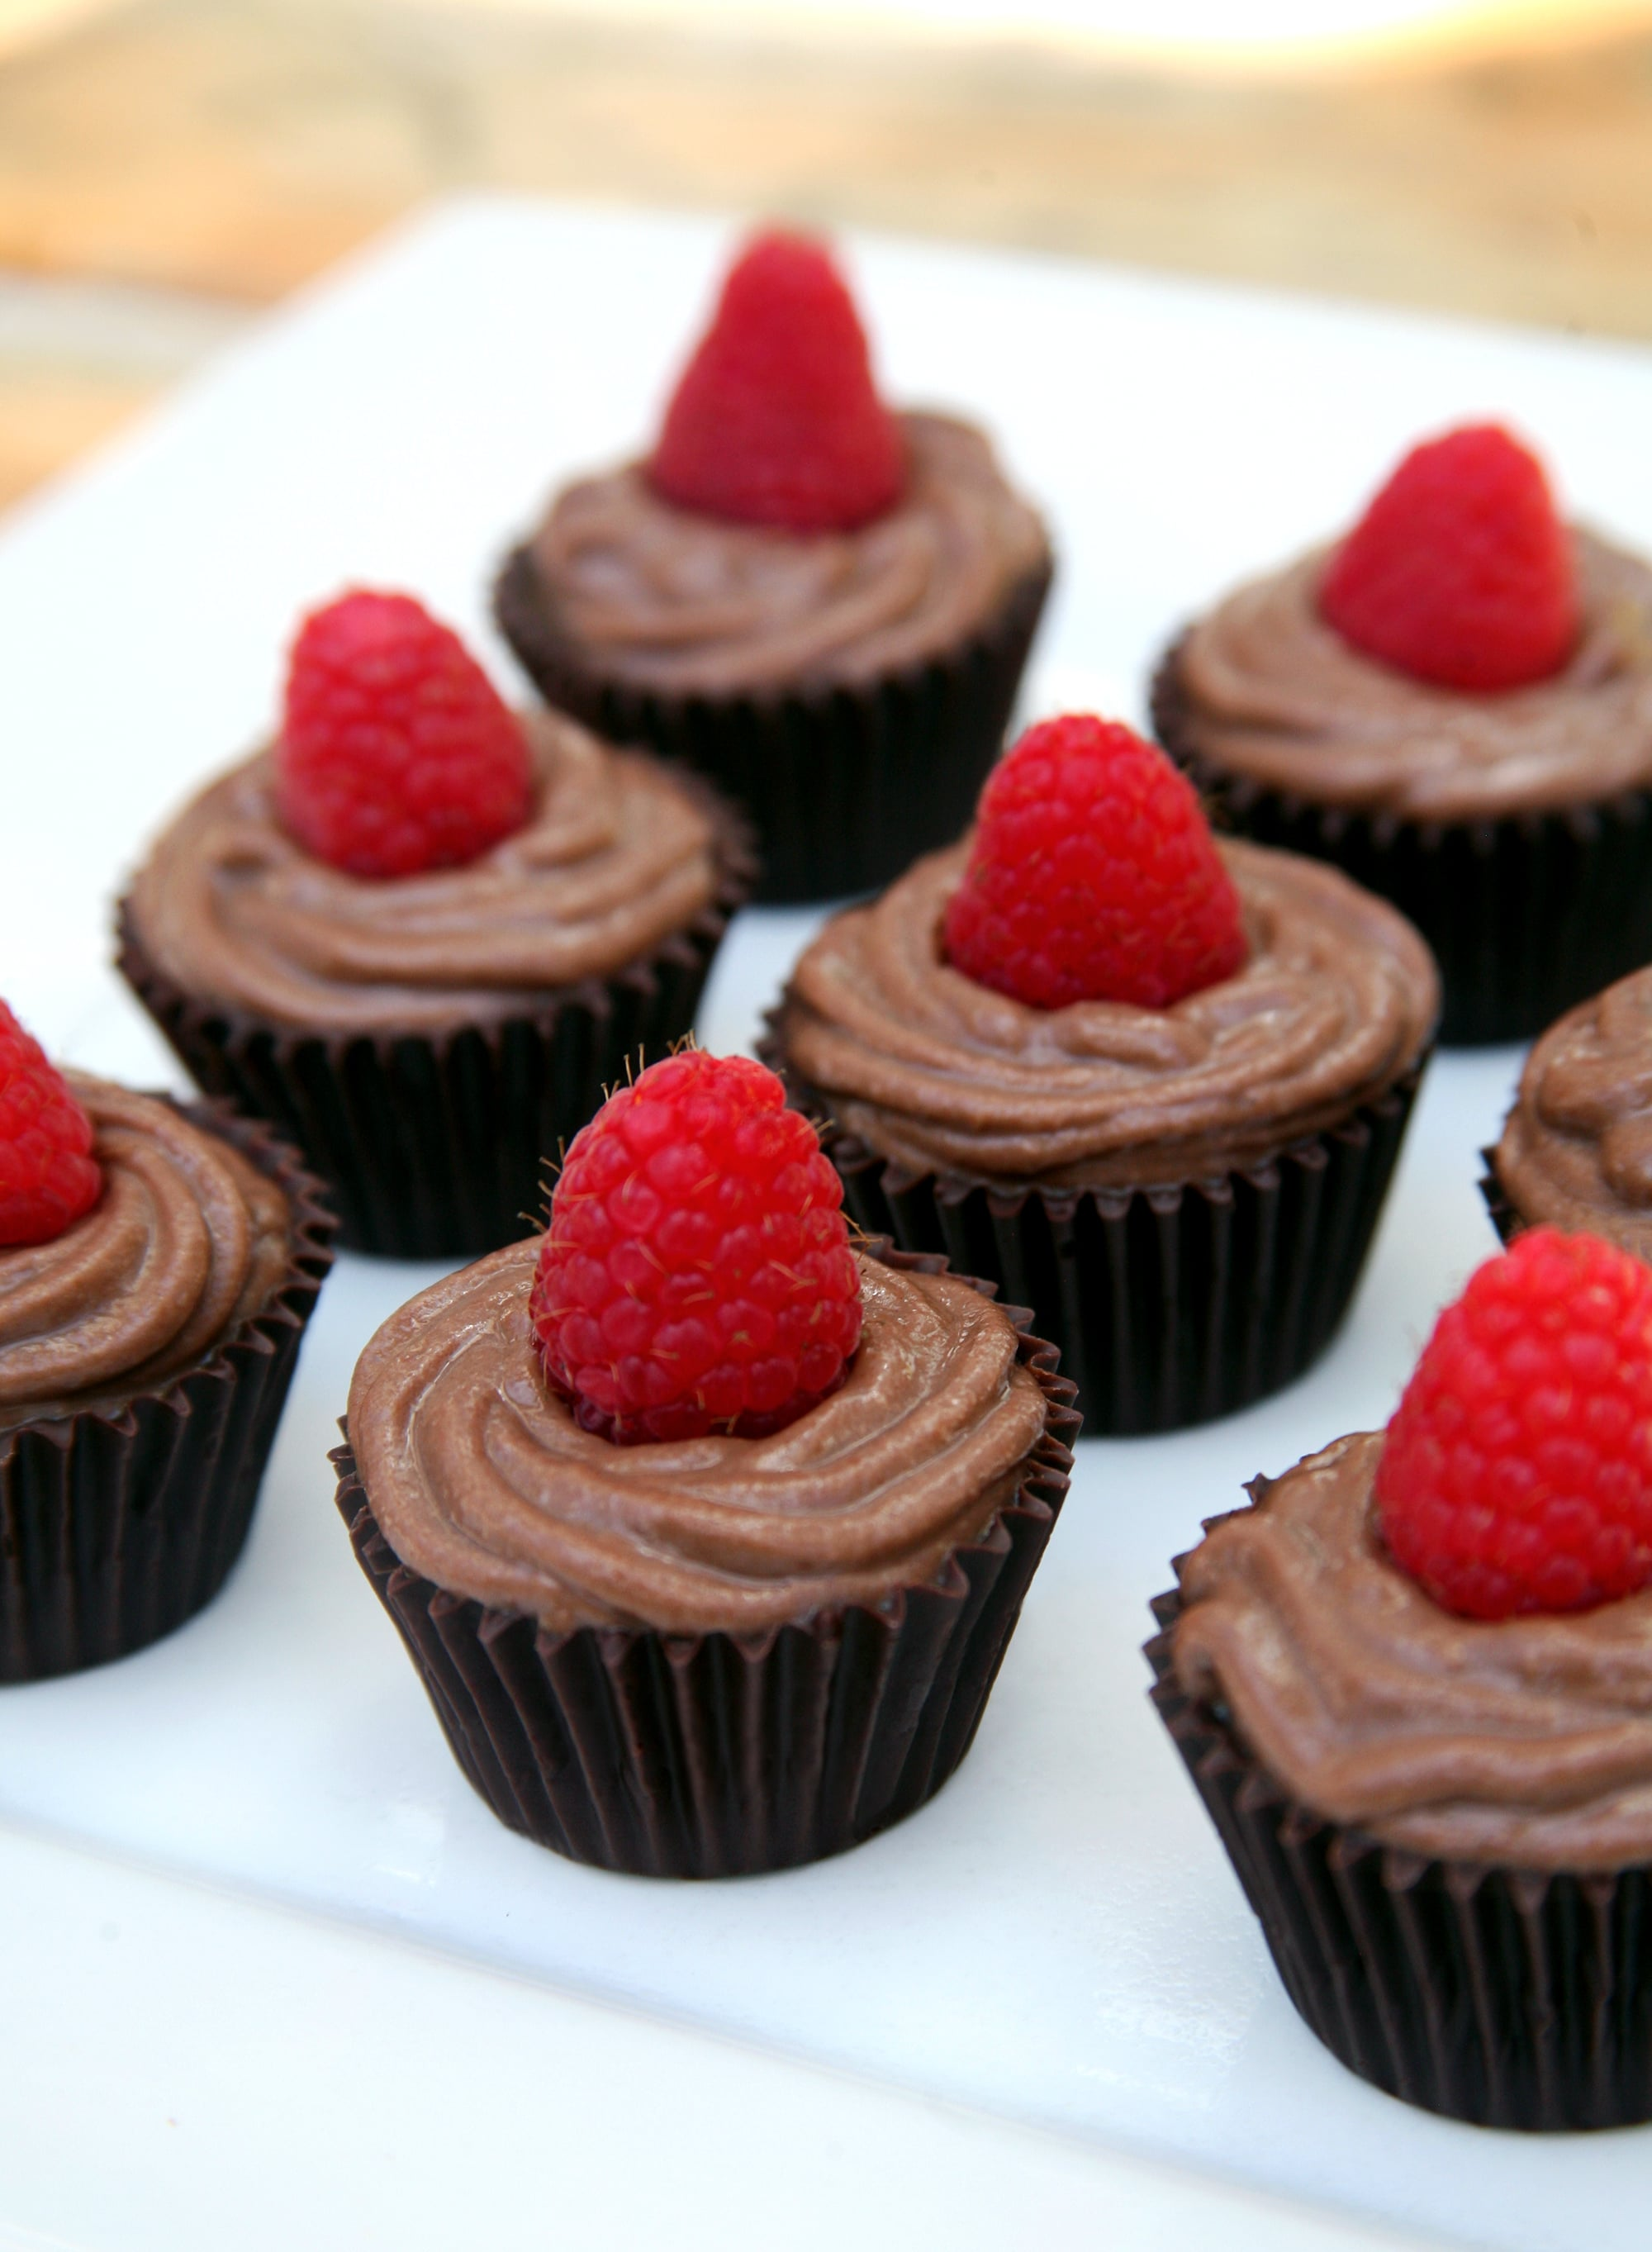 Vegan Chocolate Mousse in Chocolate Cups | POPSUGAR Fitness